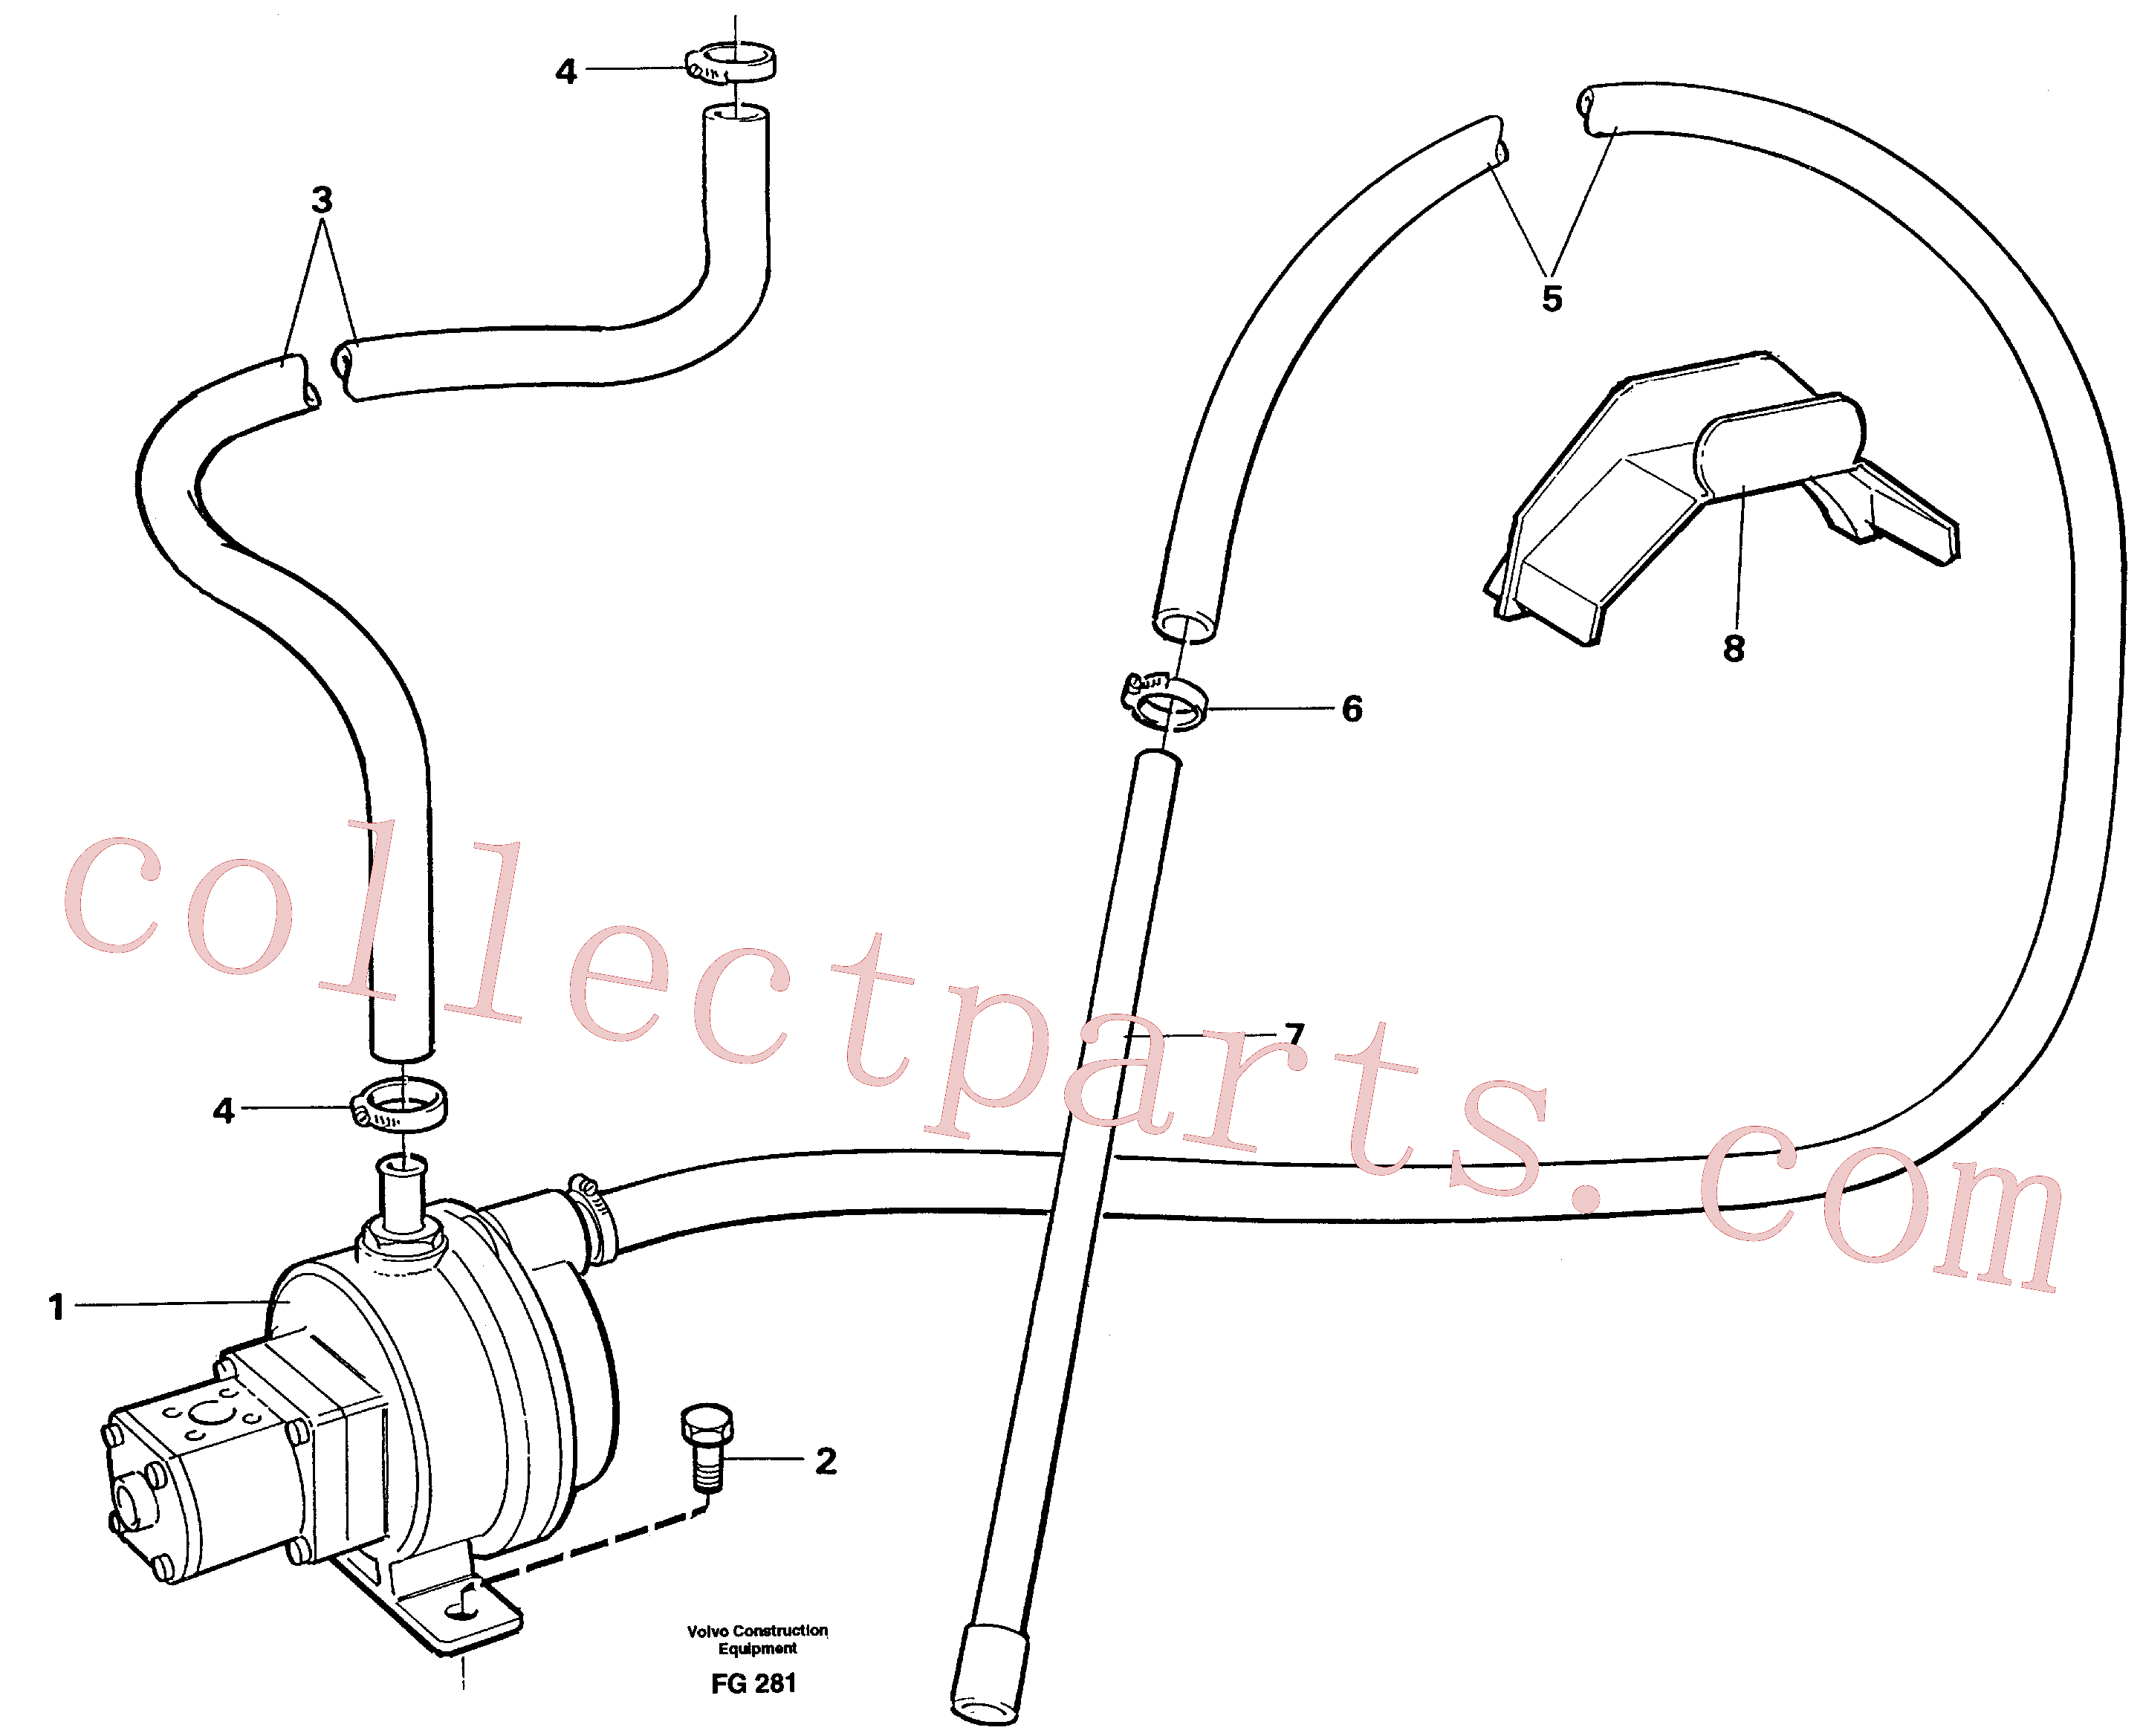 VOE4850693 for Volvo Fuelfilling pump with hoses(FG281 assembly)